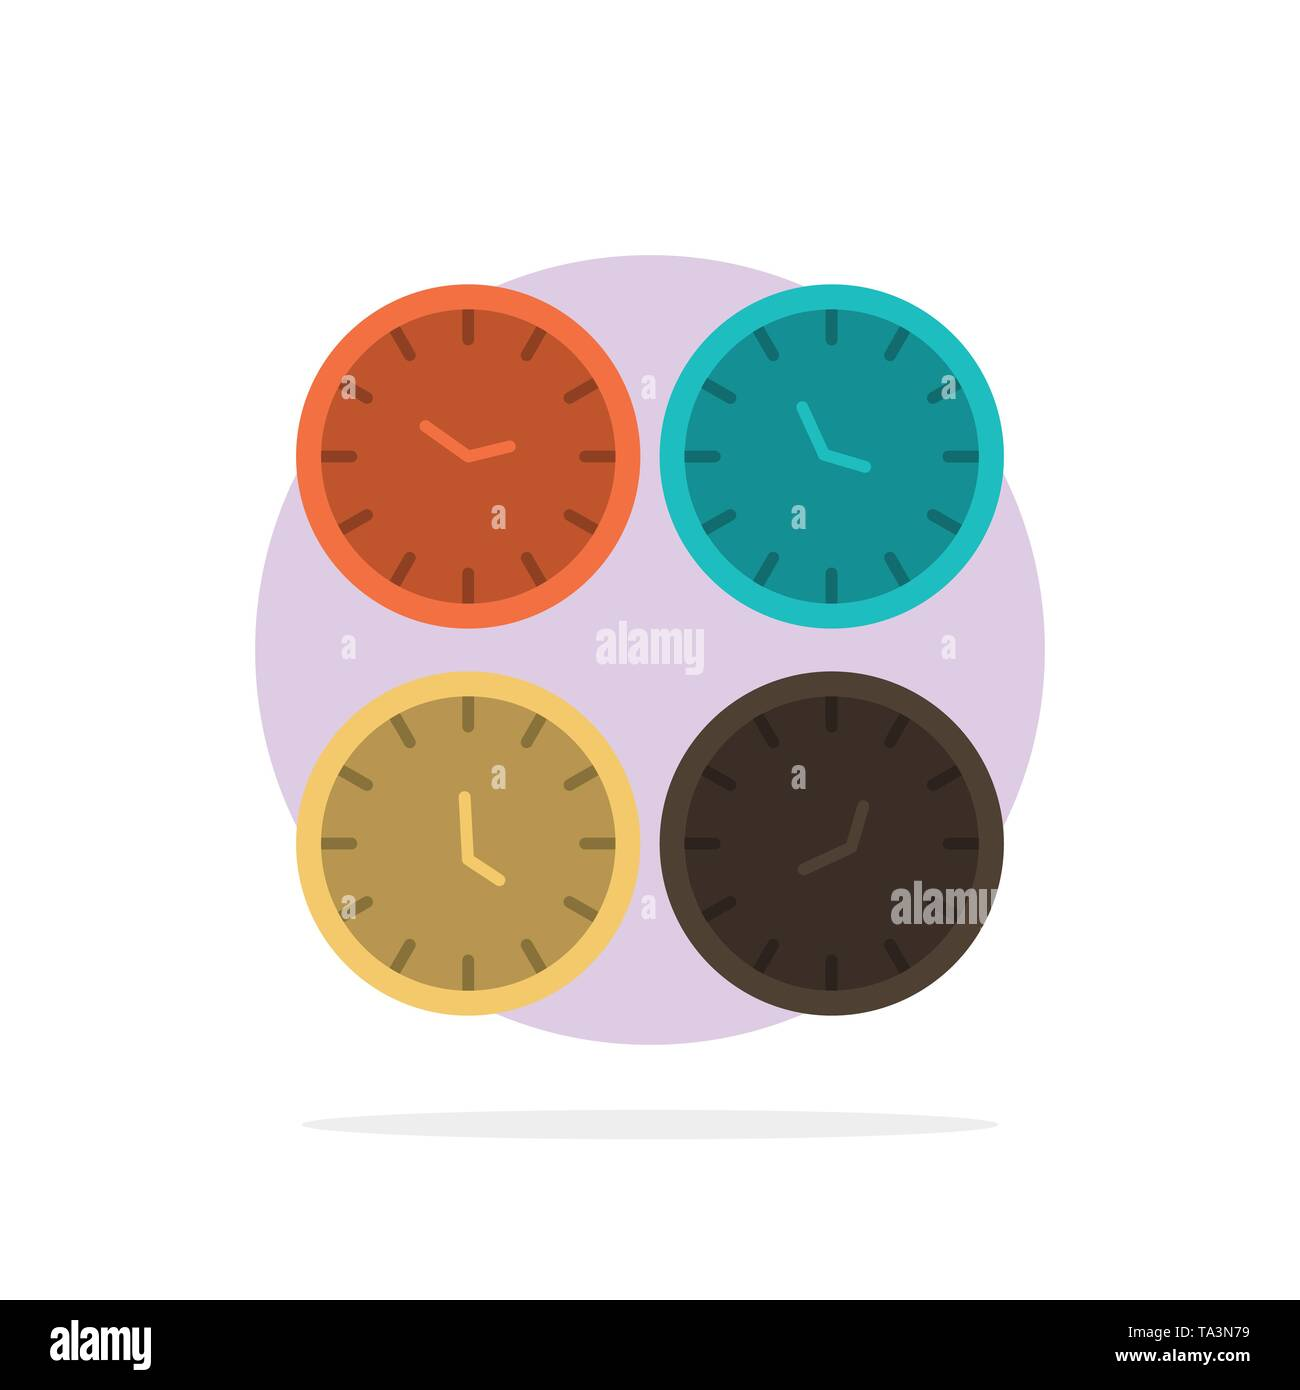 Clock, Business, Clocks, Office Clocks, Time Zone, Wall Clocks, World Time Abstract Circle Background Flat color Icon - Stock Image